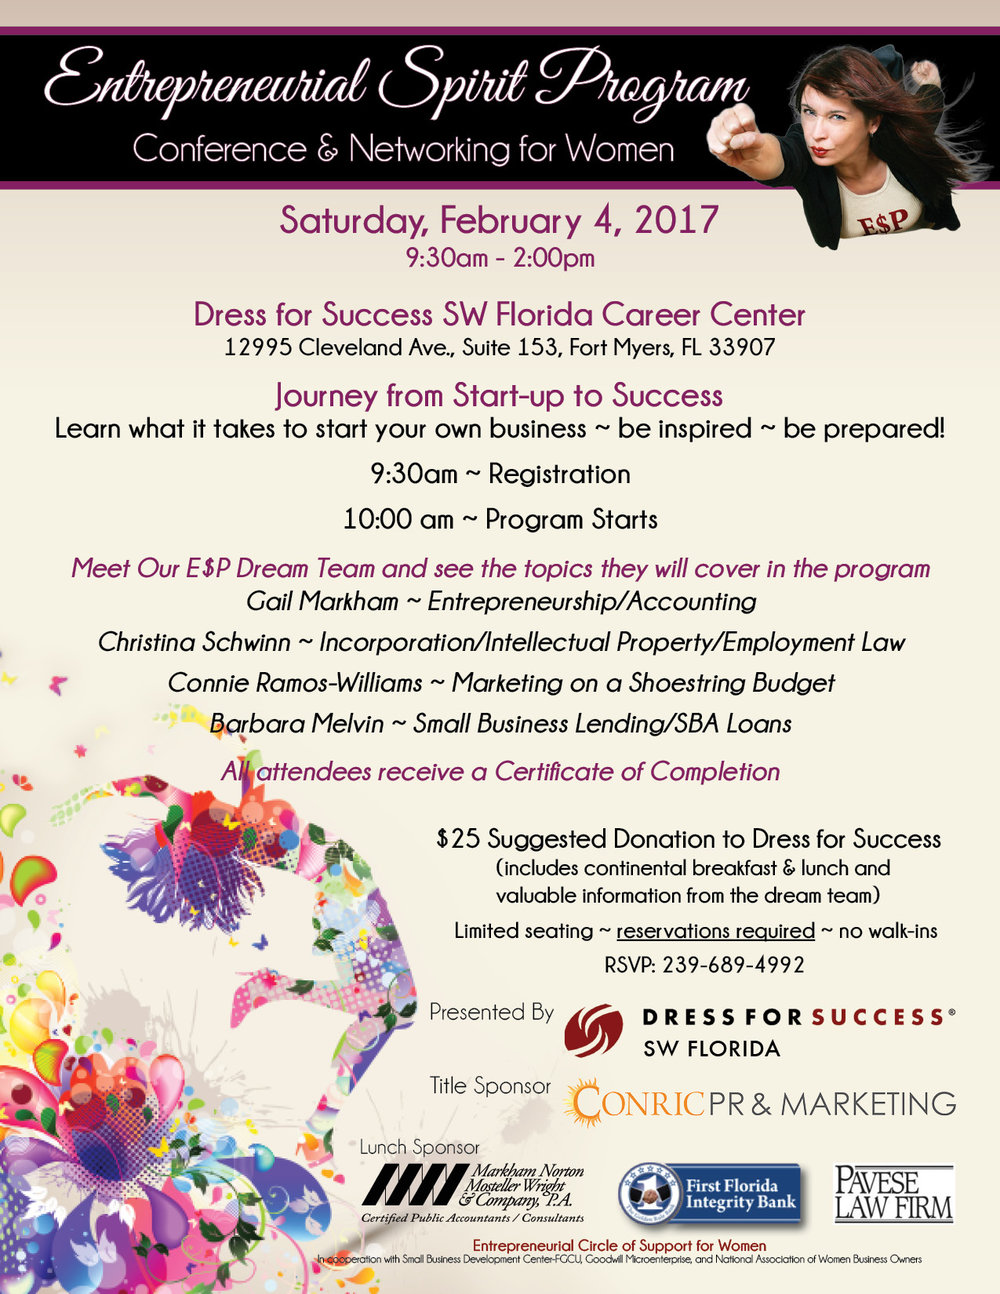 Entrepreneurial Spirit Program (E$P) - Conference & Networking for Women.  Saturday, February 4, 2017 -  9:30 am to 2:00 pm  Dress for Success SW Florida Career Center. 12995 Cleveland Ave., Suite 153, Fort Myers, FL 33907 Journey from Start-up to Success Learn what it takes to start your own business ~ be inspired ~ be prepared! 9:30am ~ Registration 10:00 am ~ Program Starts Meet Our E$P Dream Team and see the topics they will cover in the program Gail Markham ~ Entrepreneurship/Accounting Christina Schwinn ~ Incorporation/Intellectual Property/Employment Law Connie Ramos-Williams ~ Marketing on a Shoestring Budget Barbara Melvin ~ Small Business Lending/SBA Loans All attendees receive a Certificate of Completion $25 Suggested Donation to Dress for Success - (includes continental breakfast & lunch and valuable information from the dream team) Limited seating ~ reservations required ~ no walk-ins   RSVP: 239-689-4992